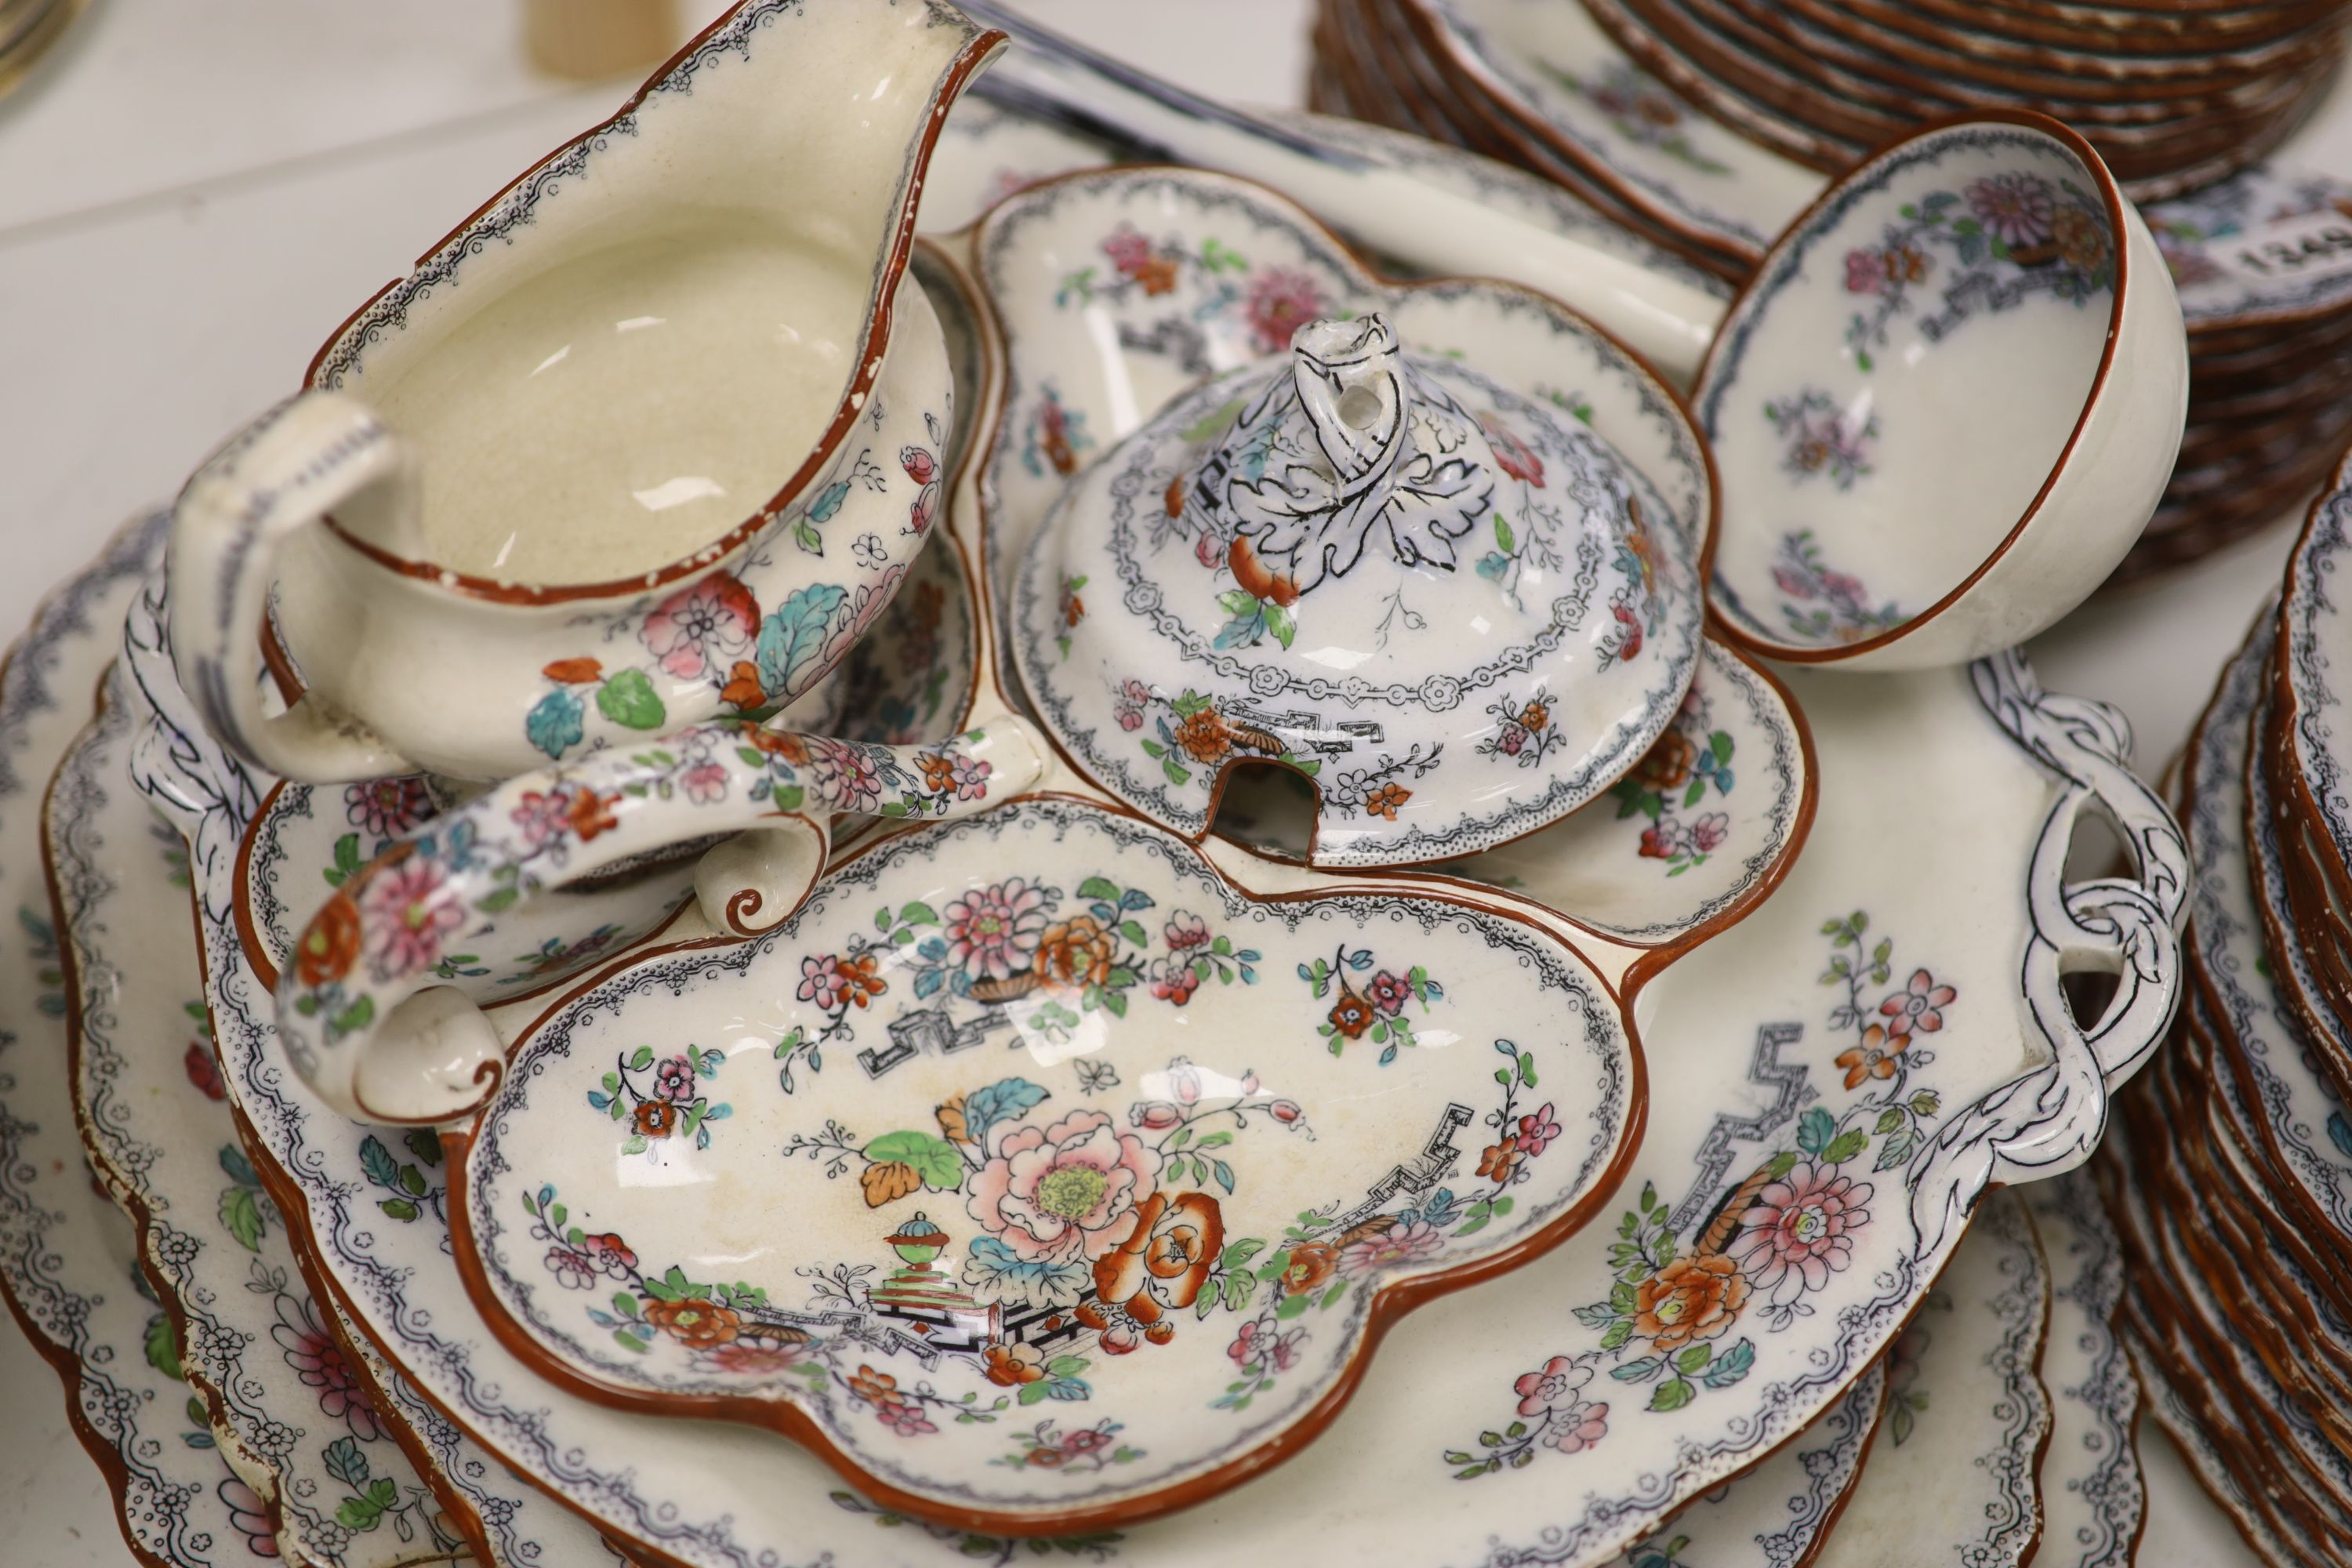 A Victorian Ashworth ironstone part dinner service - Image 2 of 6